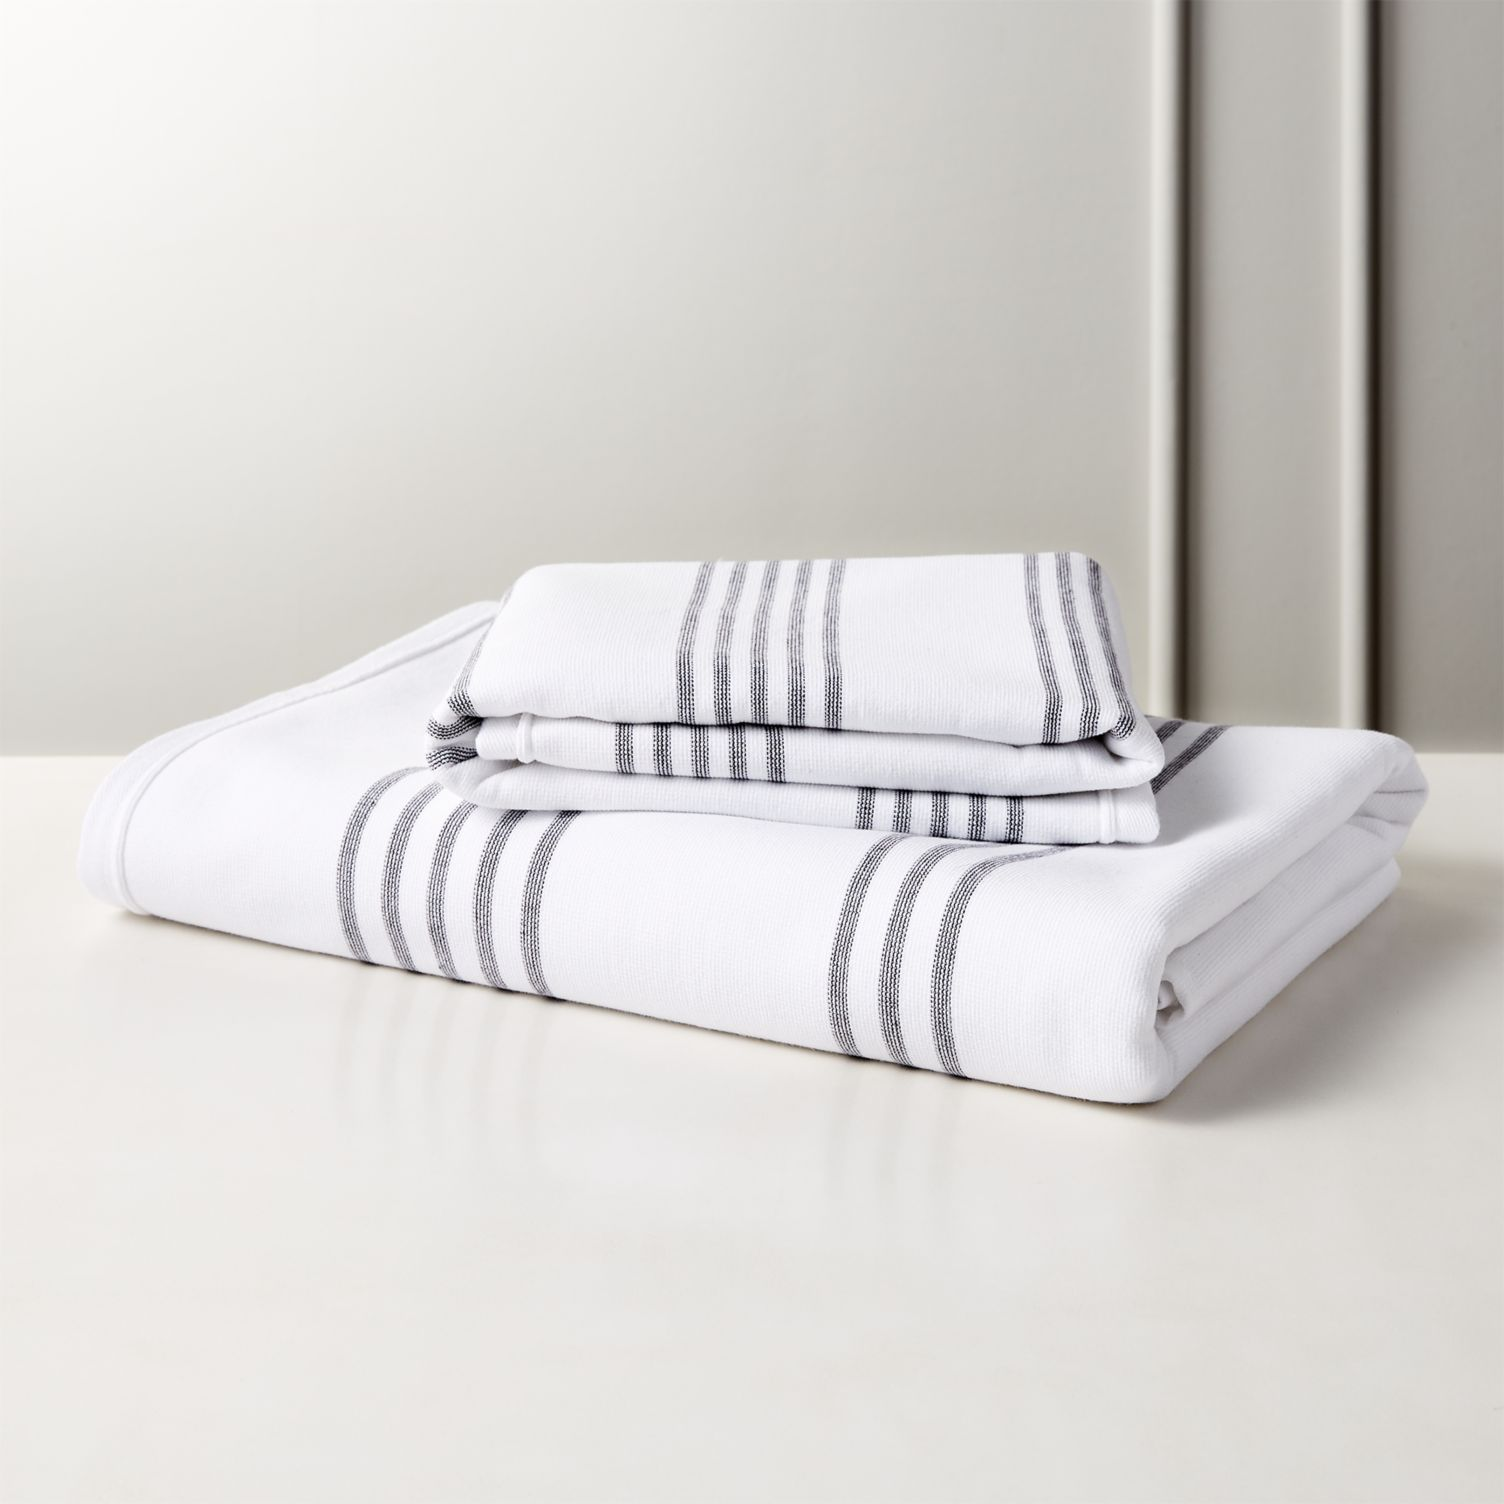 Black and white striped towels from CB2